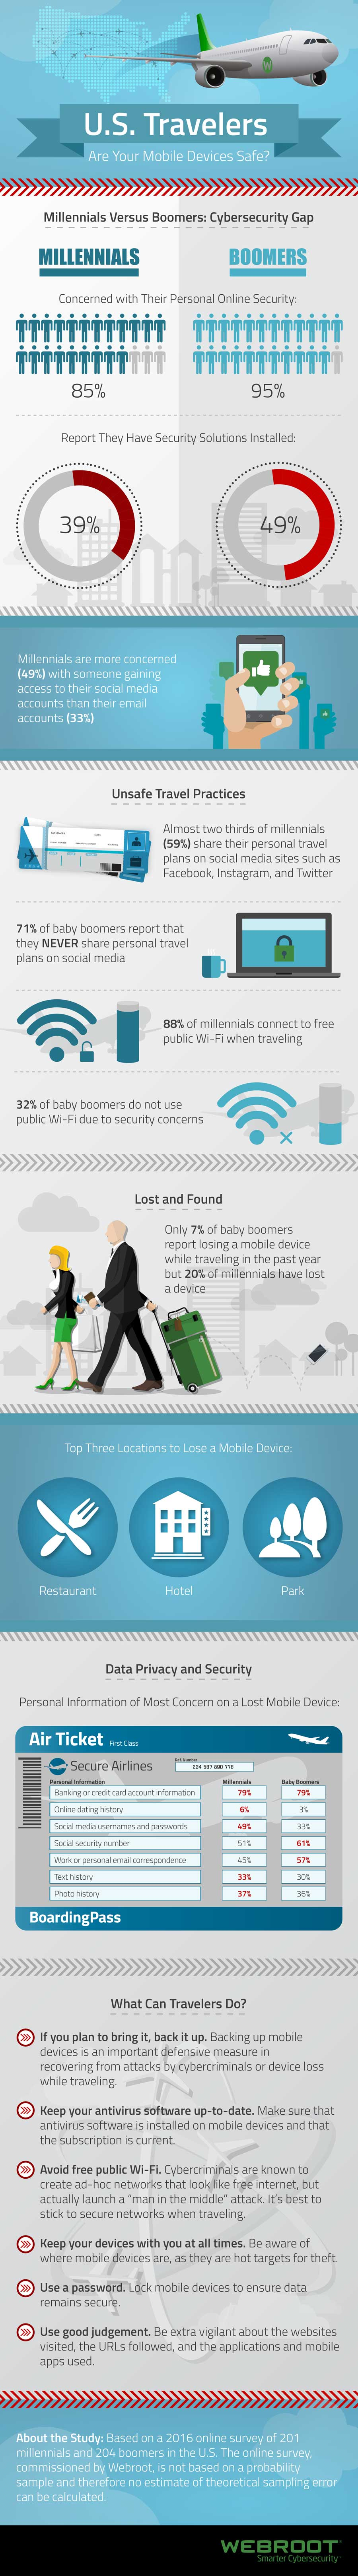 BYOD security - infographic